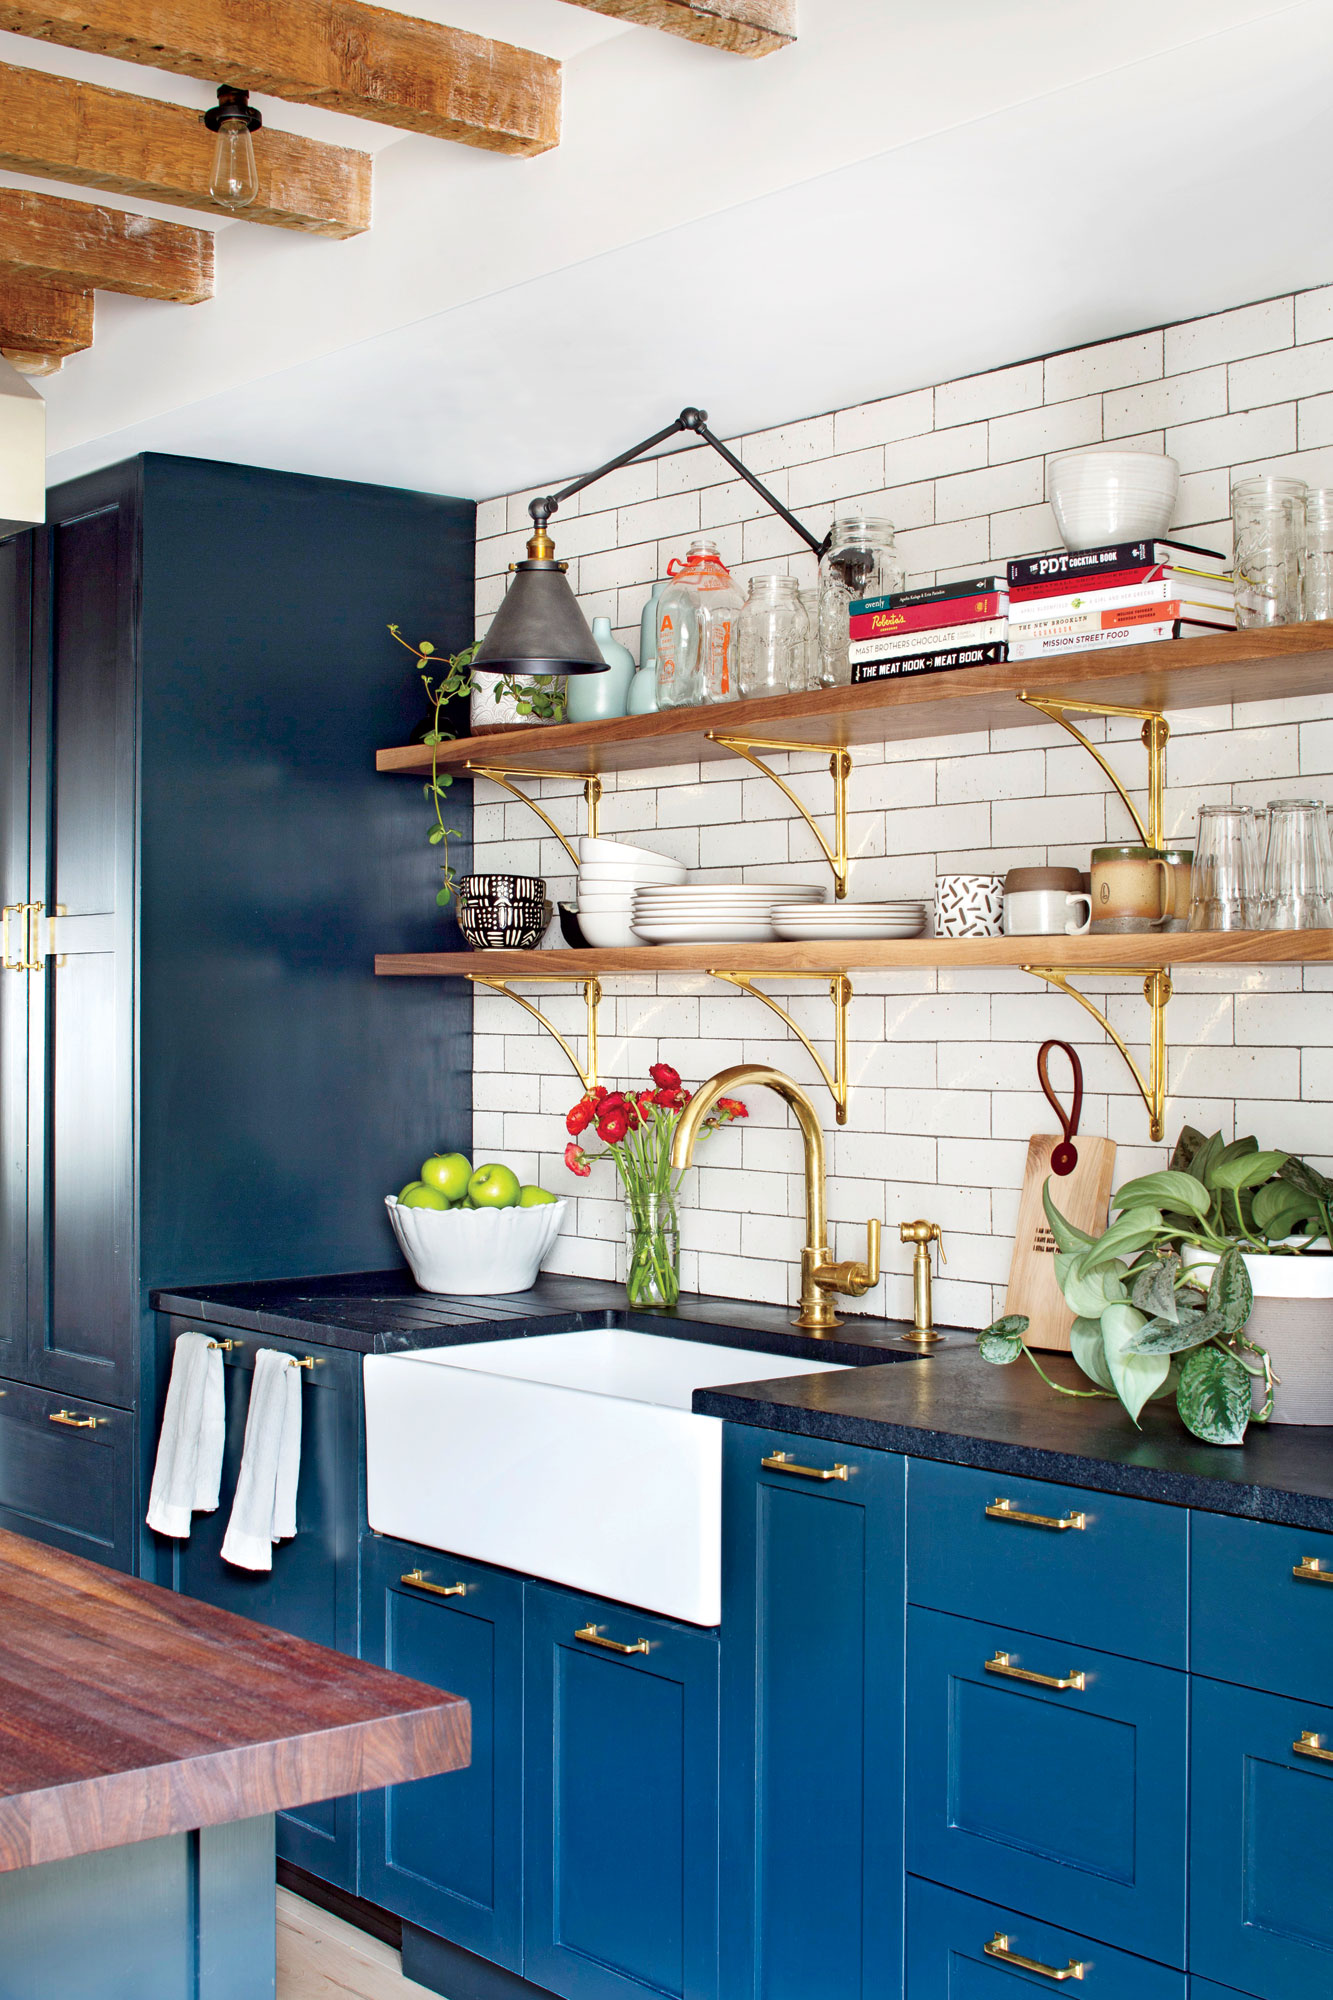 White Kitchen with Blue Cabinets